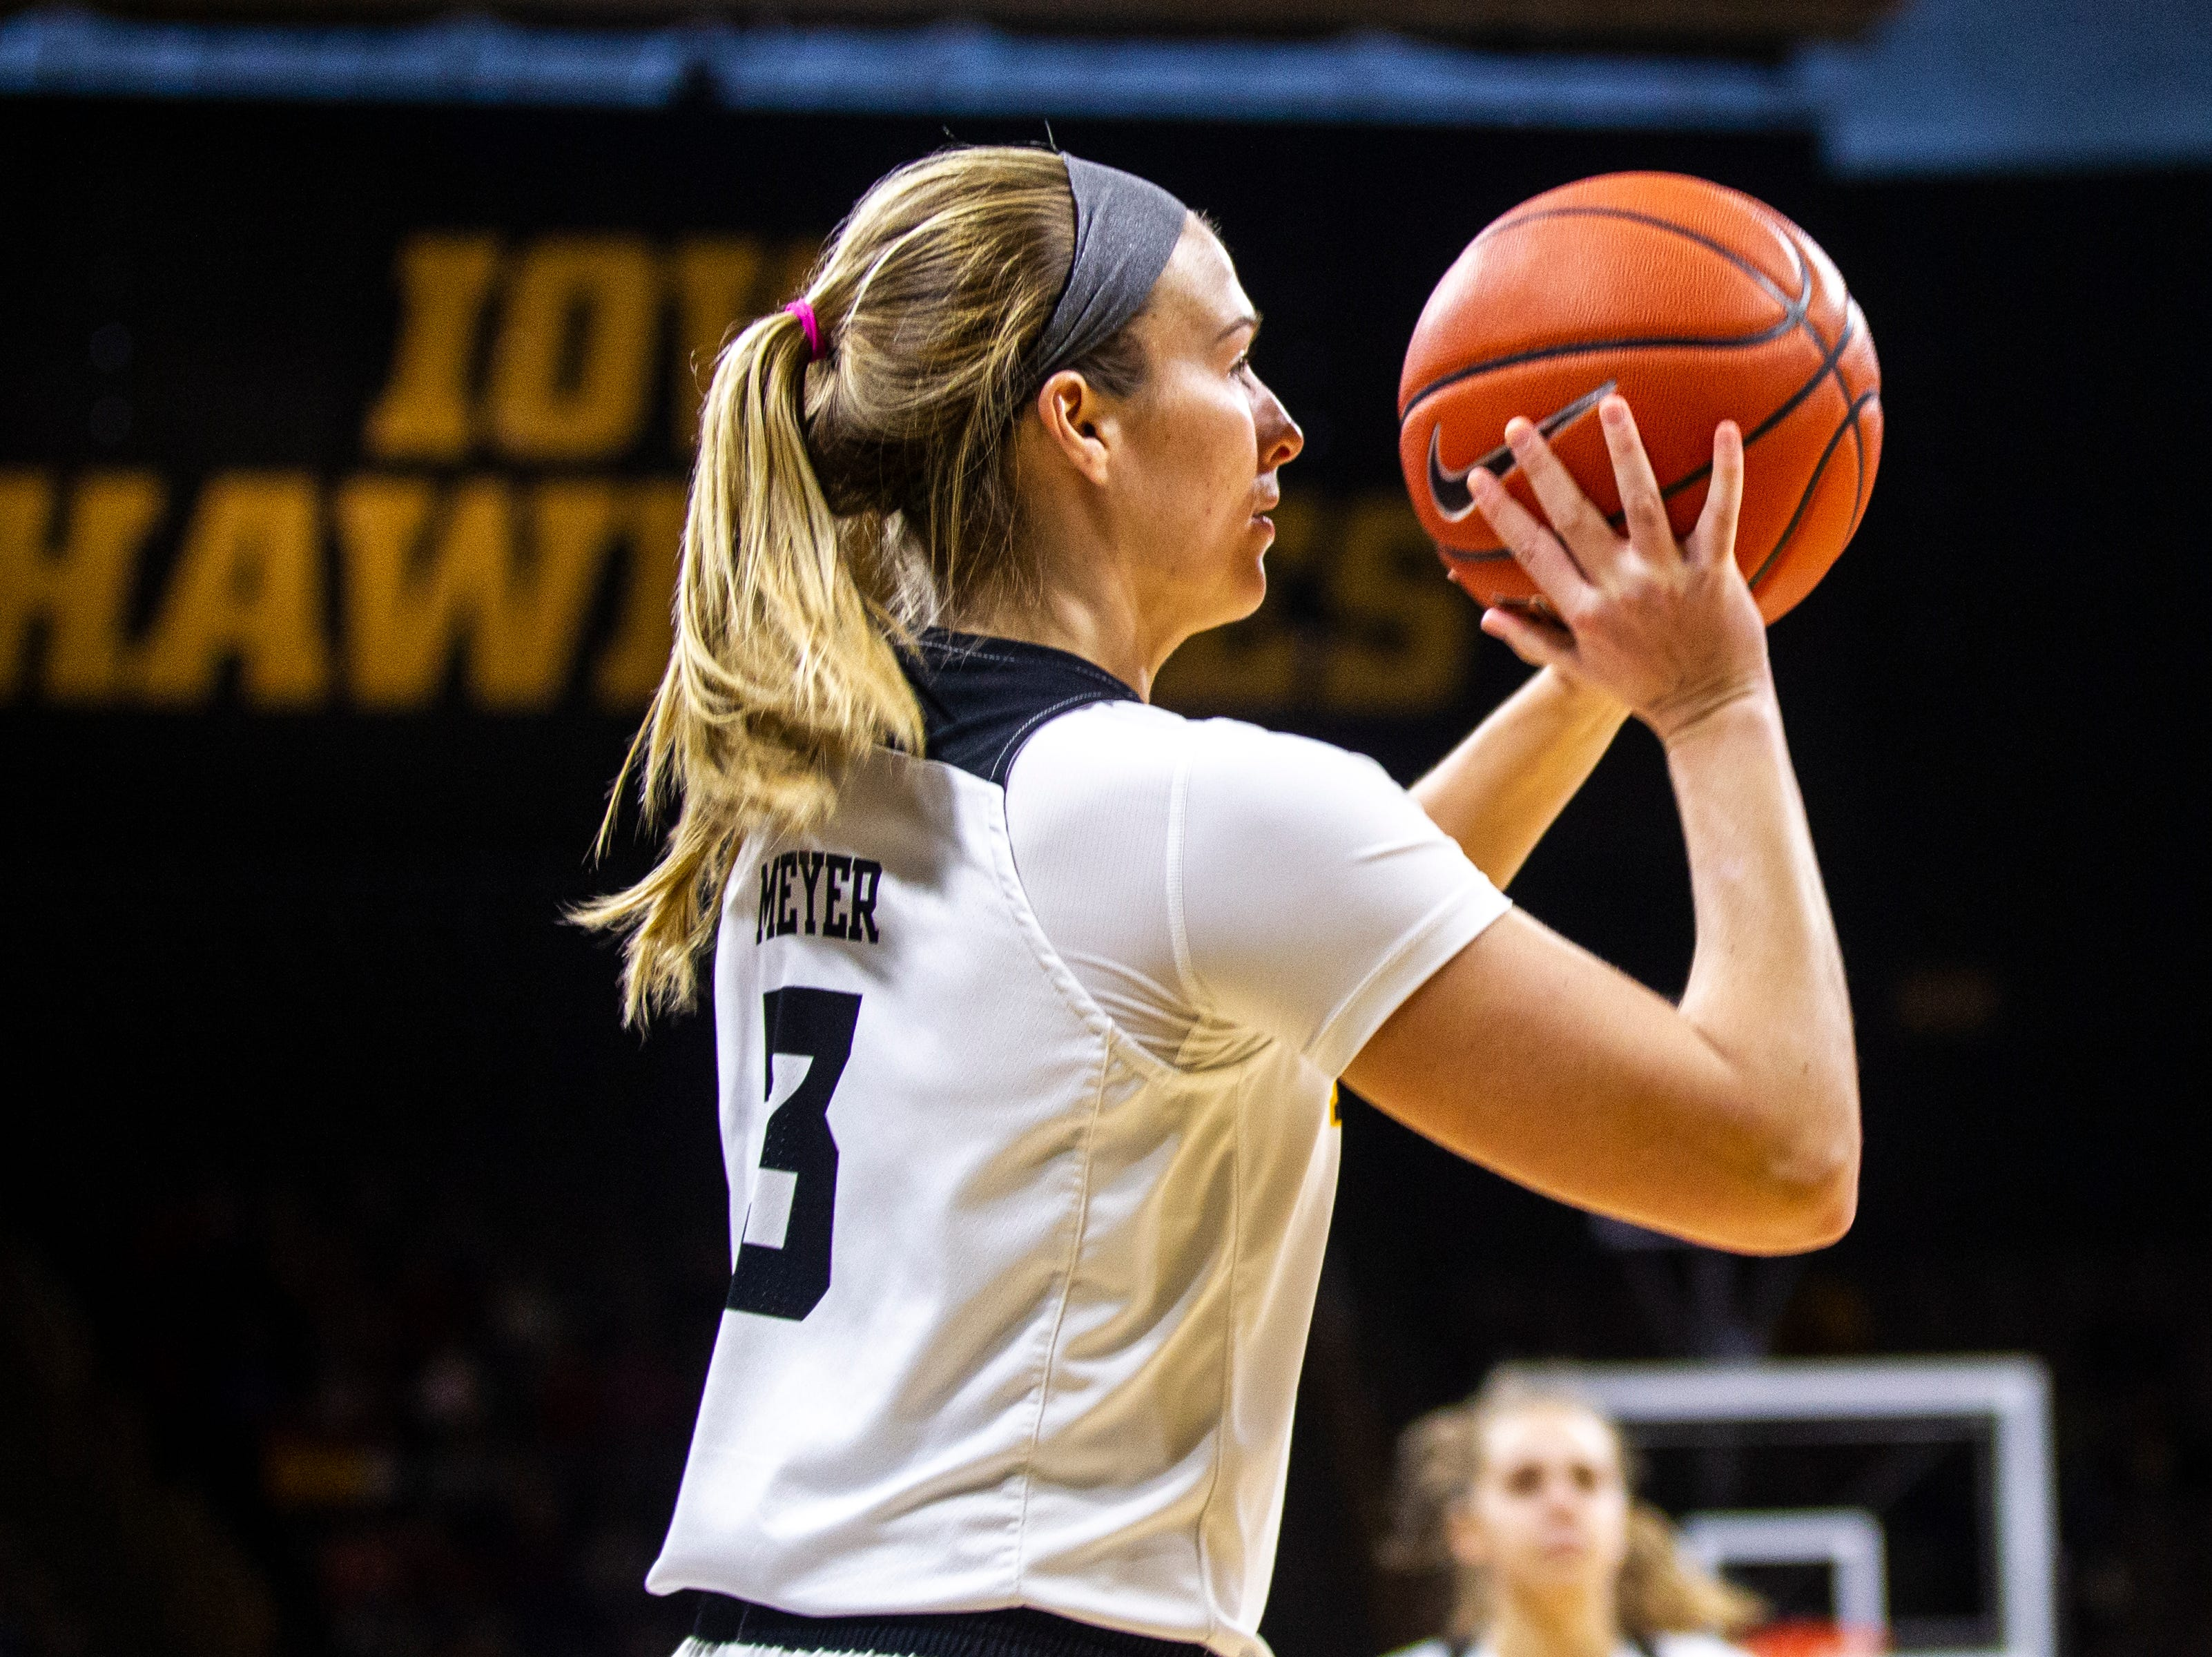 Iowa guard Makenzie Meyer (3) shoots a 3-point basket during a NCAA Big Ten Conference women's basketball game on Sunday, Jan. 27, 2019, at Carver-Hawkeye Arena in Iowa City, Iowa.